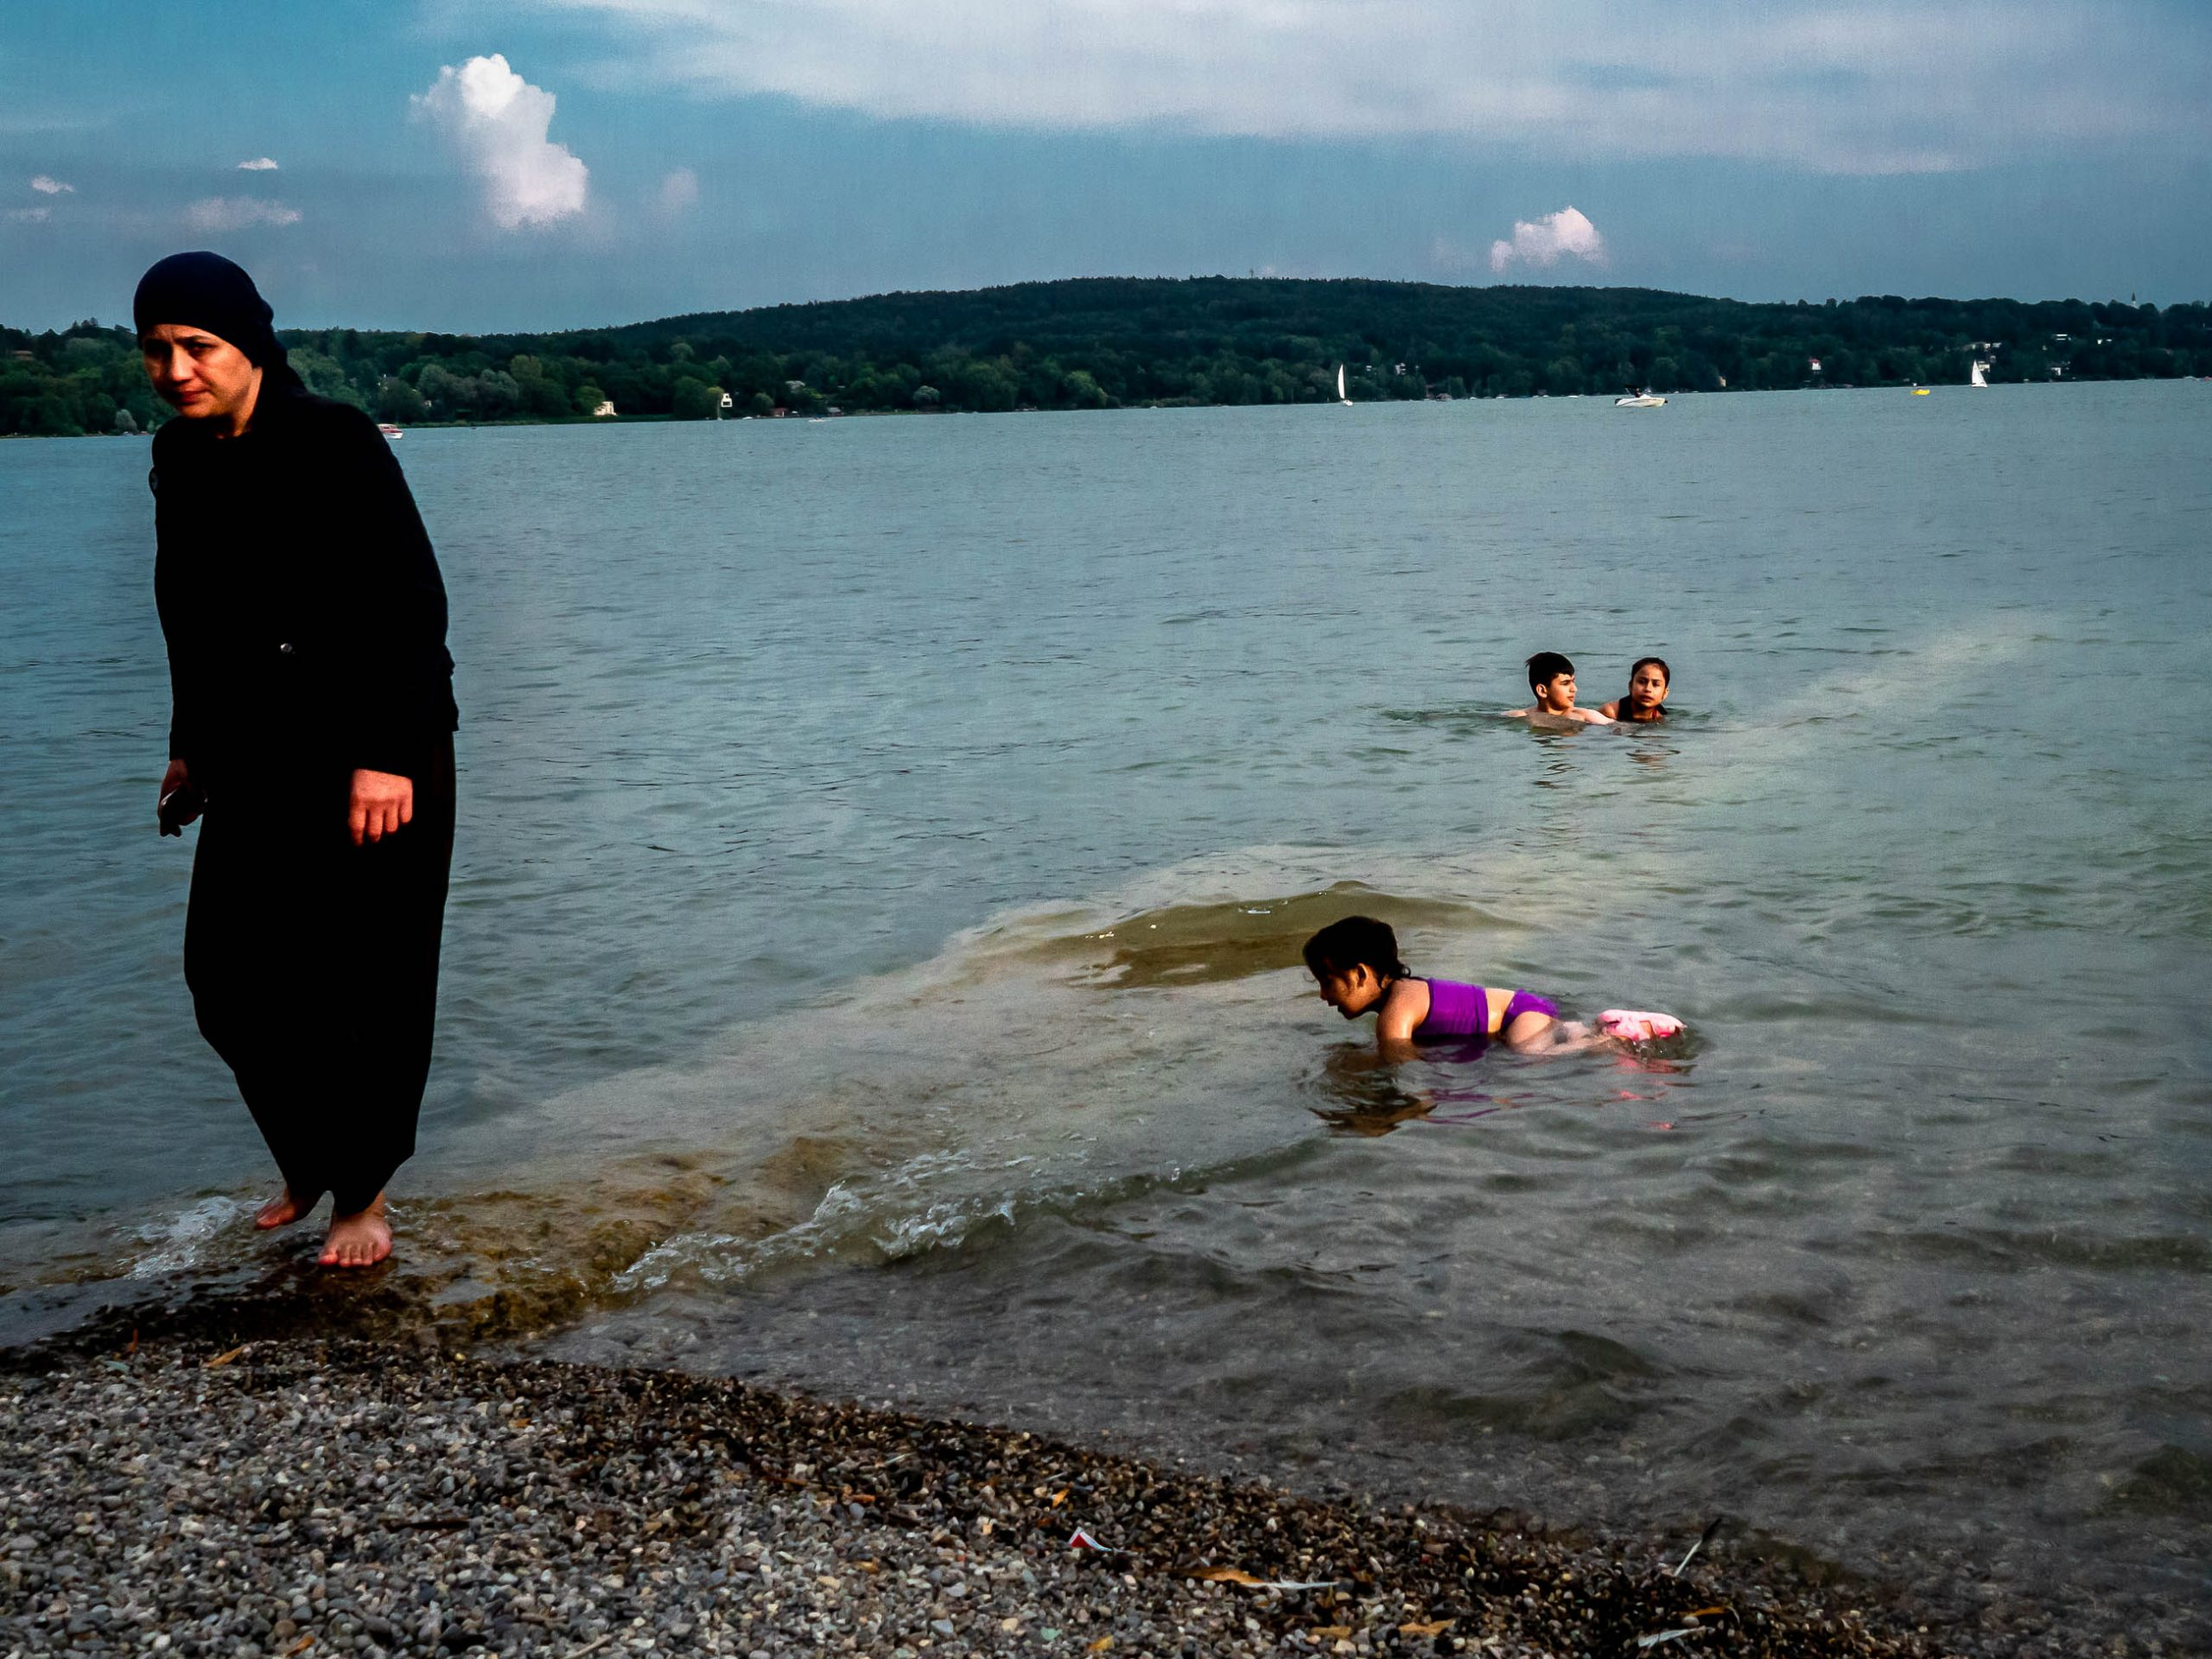 Arabian mother and her kids playing in the lake Starnberg in Bavaria, Germany